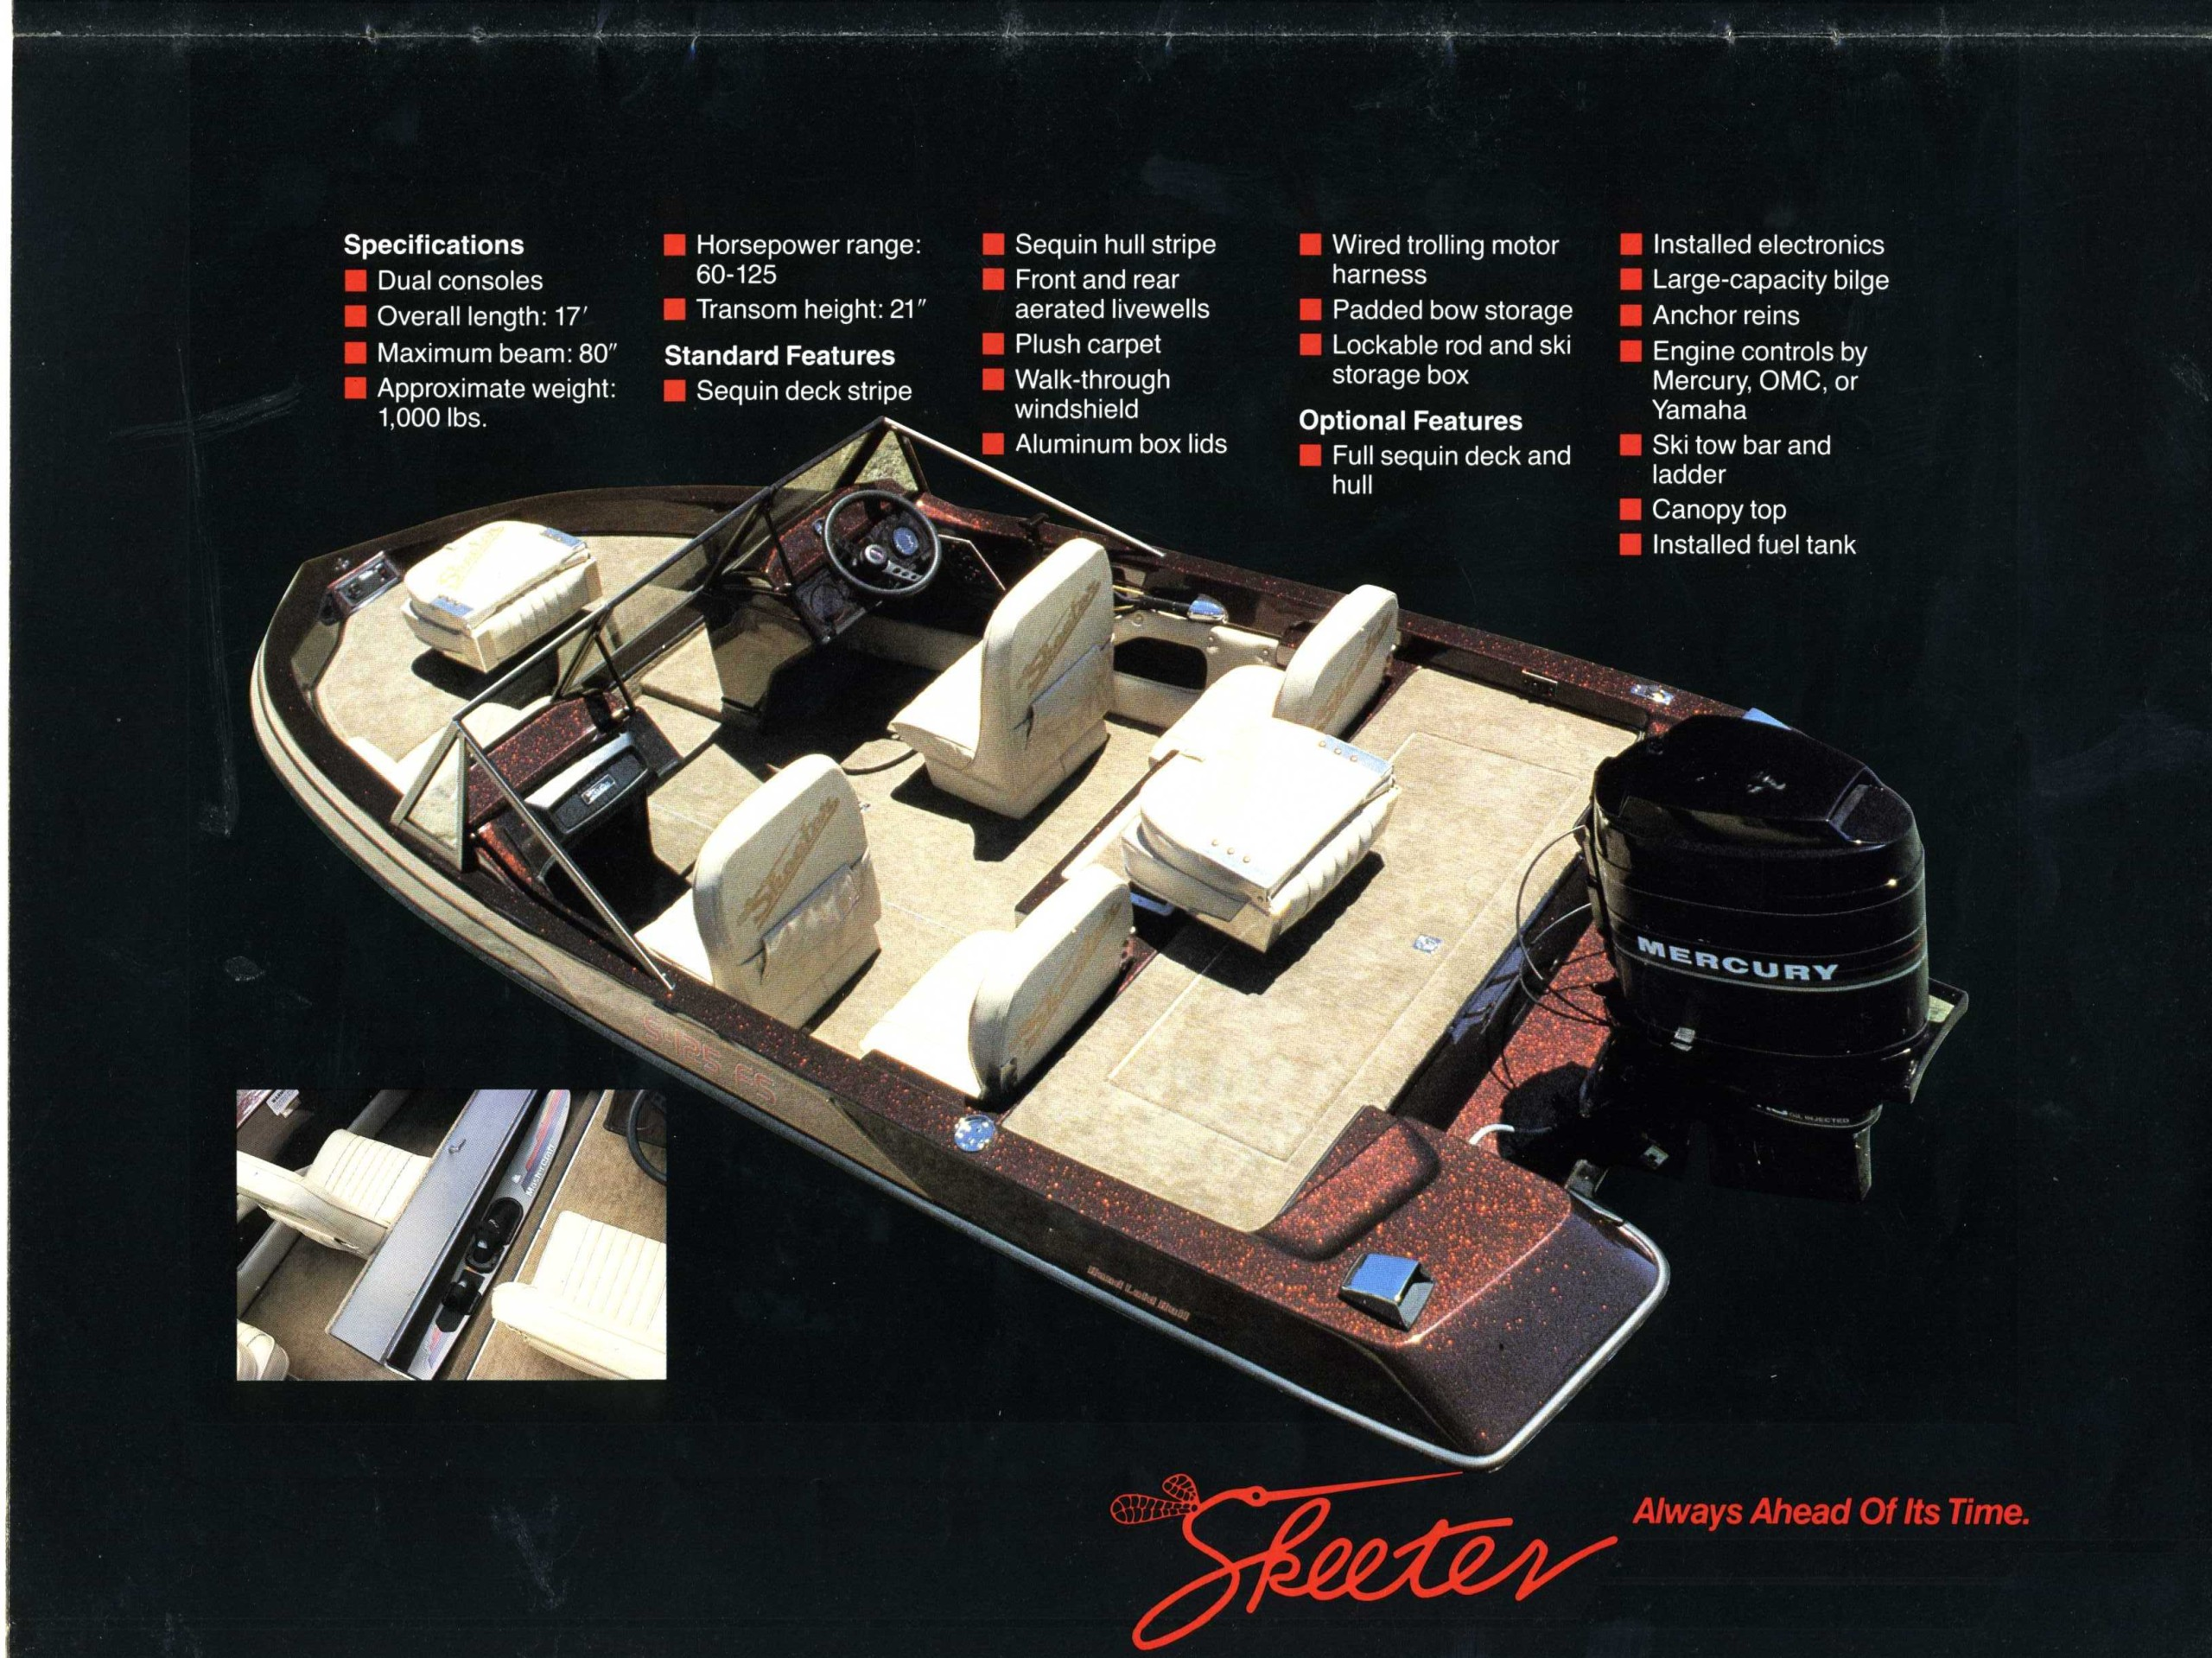 1987 Skeeter Boats Brochure Boat Tow Harness This Provided By